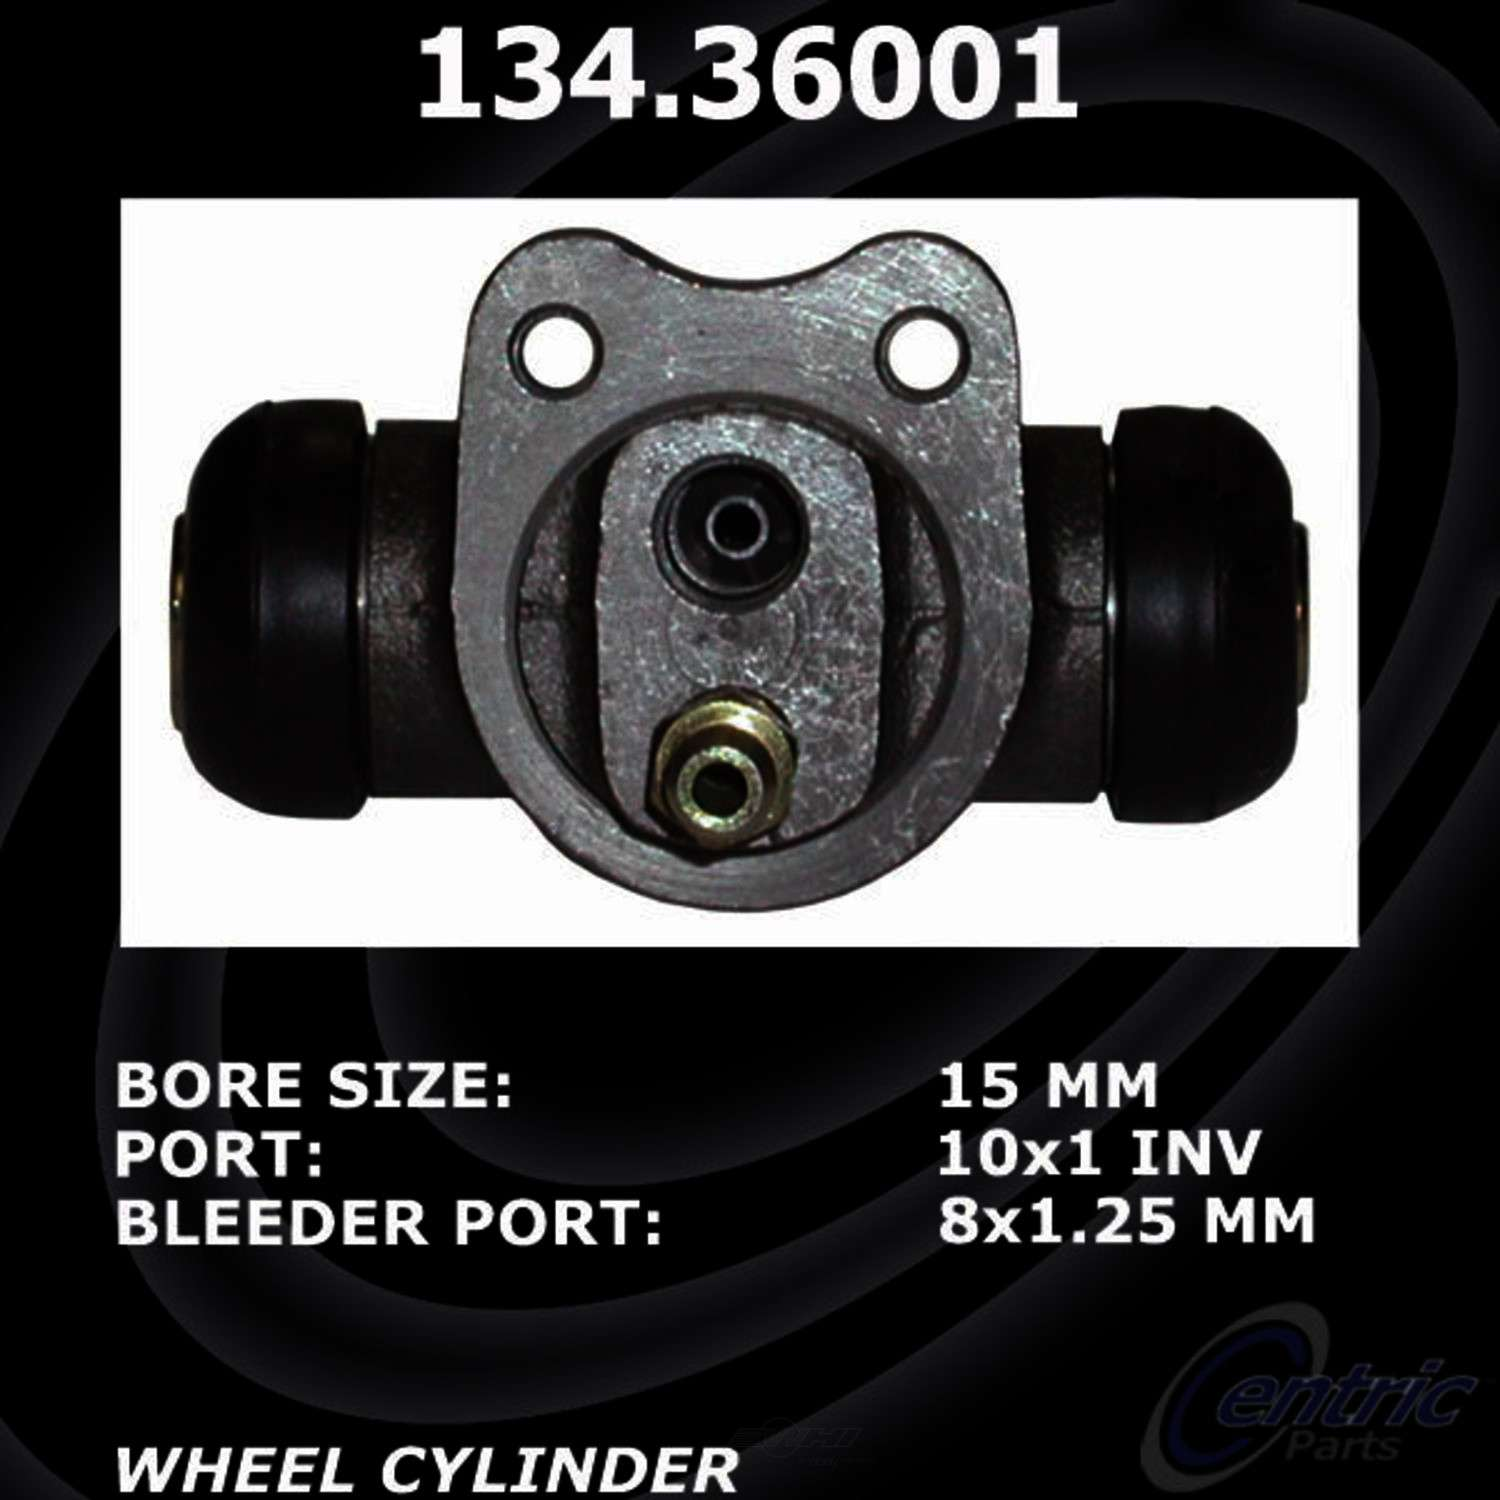 CENTRIC PARTS - Premium Wheel Cylinder-Preferred (Rear) - CEC 134.36001